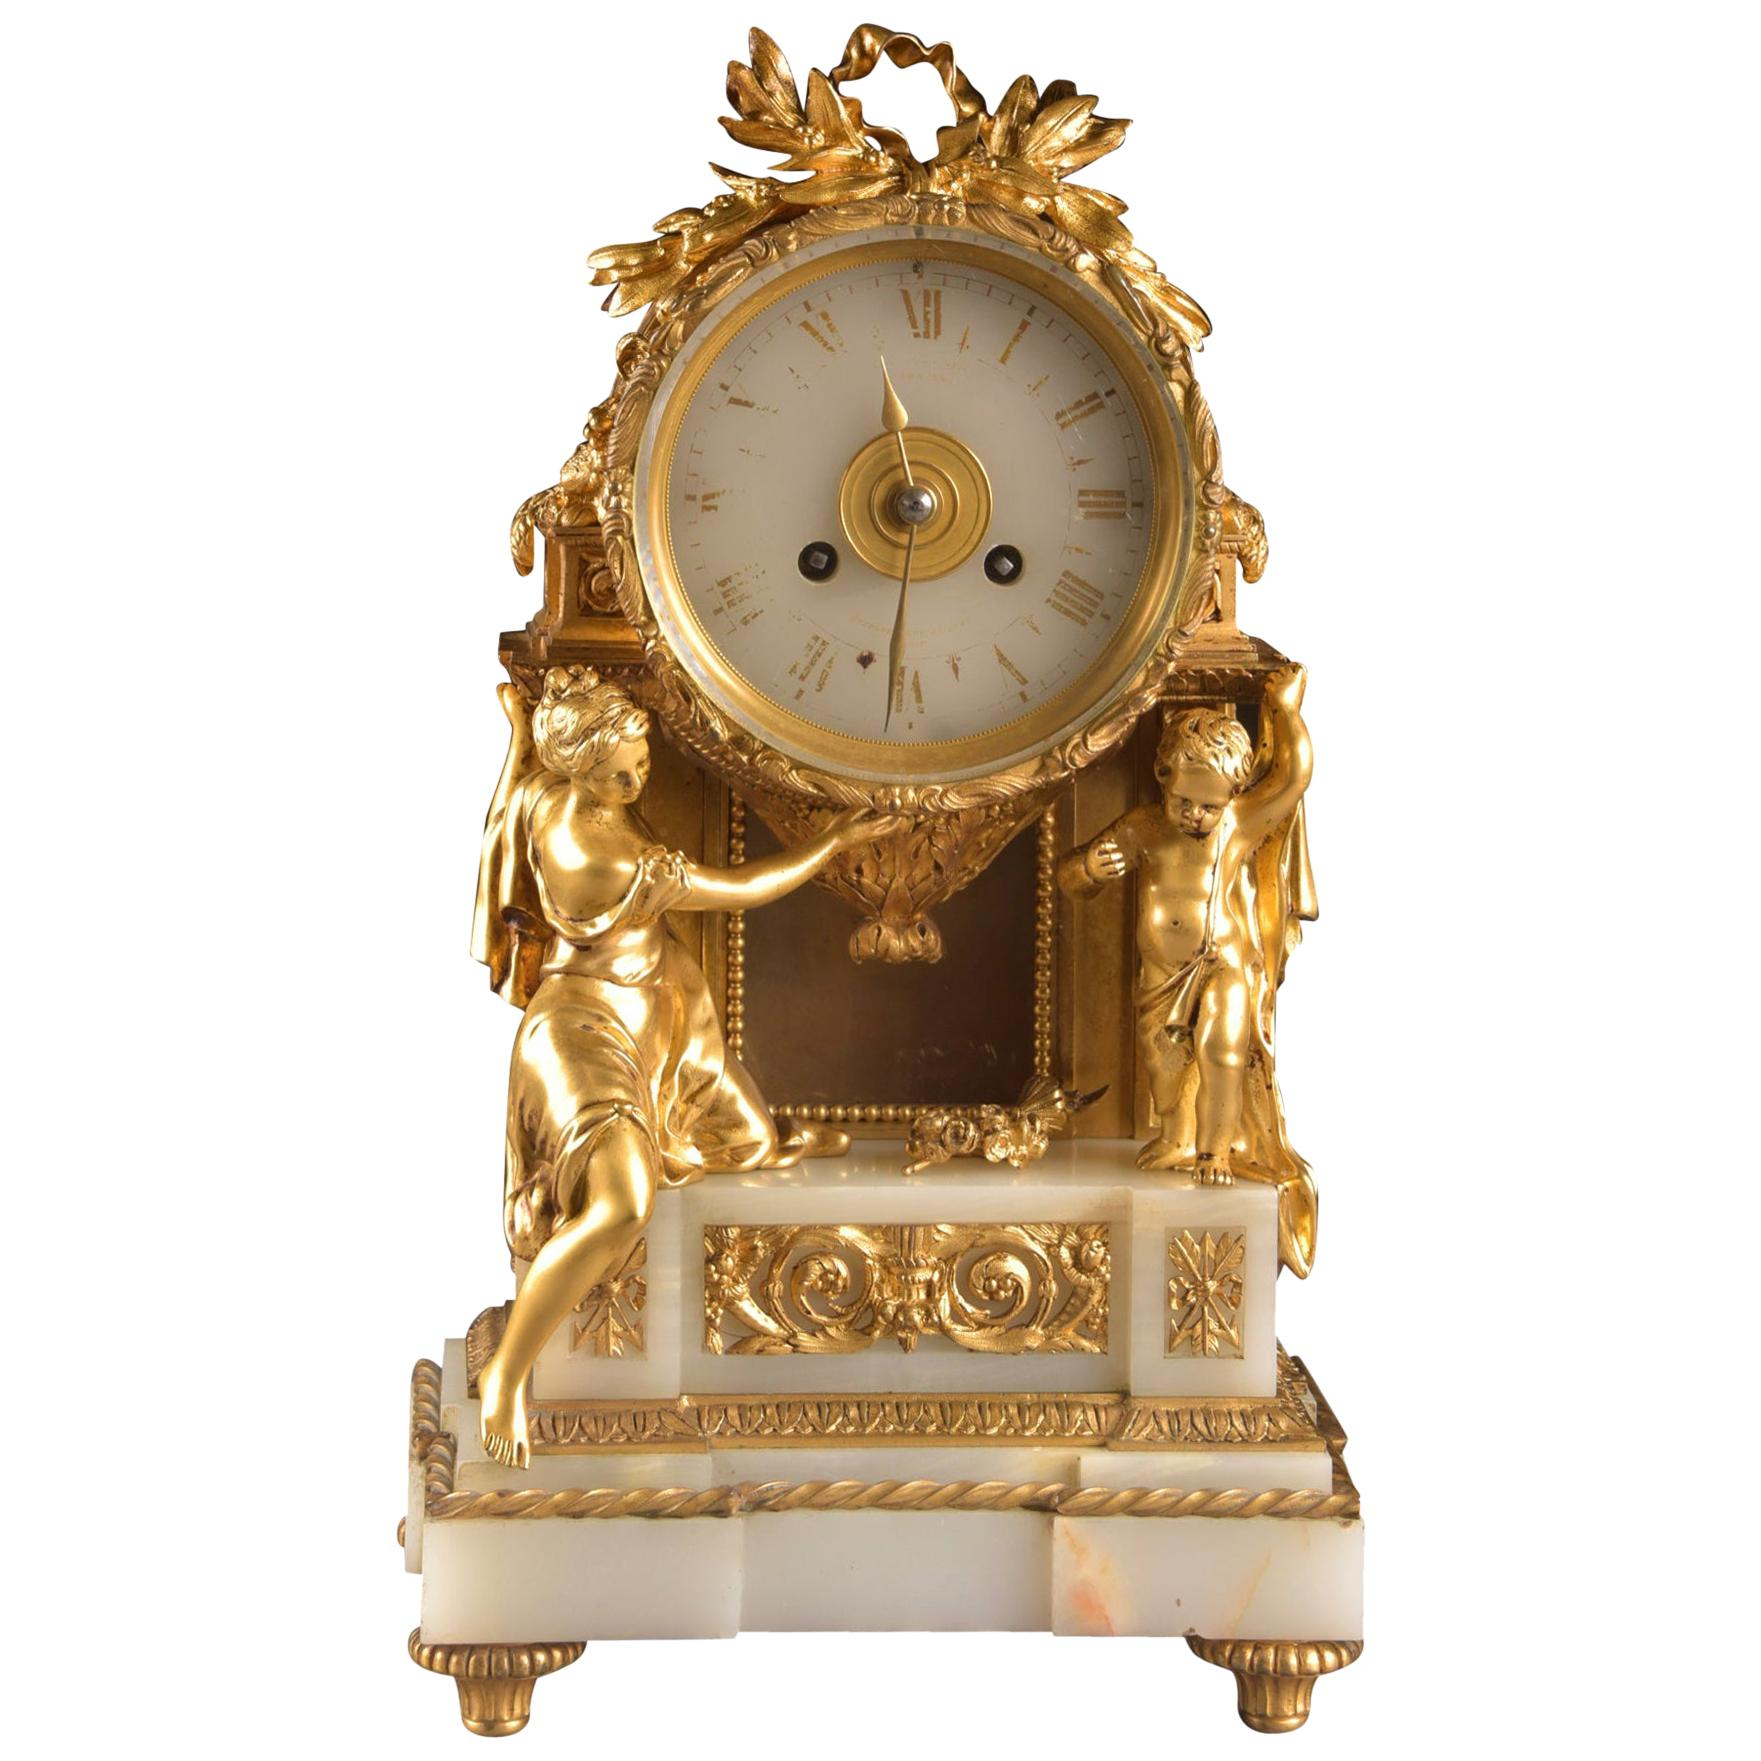 Antique And Vintage Secretaires 1495 For Sale At 1stdibs >> Louis Xvi Furniture 6 344 For Sale At 1stdibs Page 3